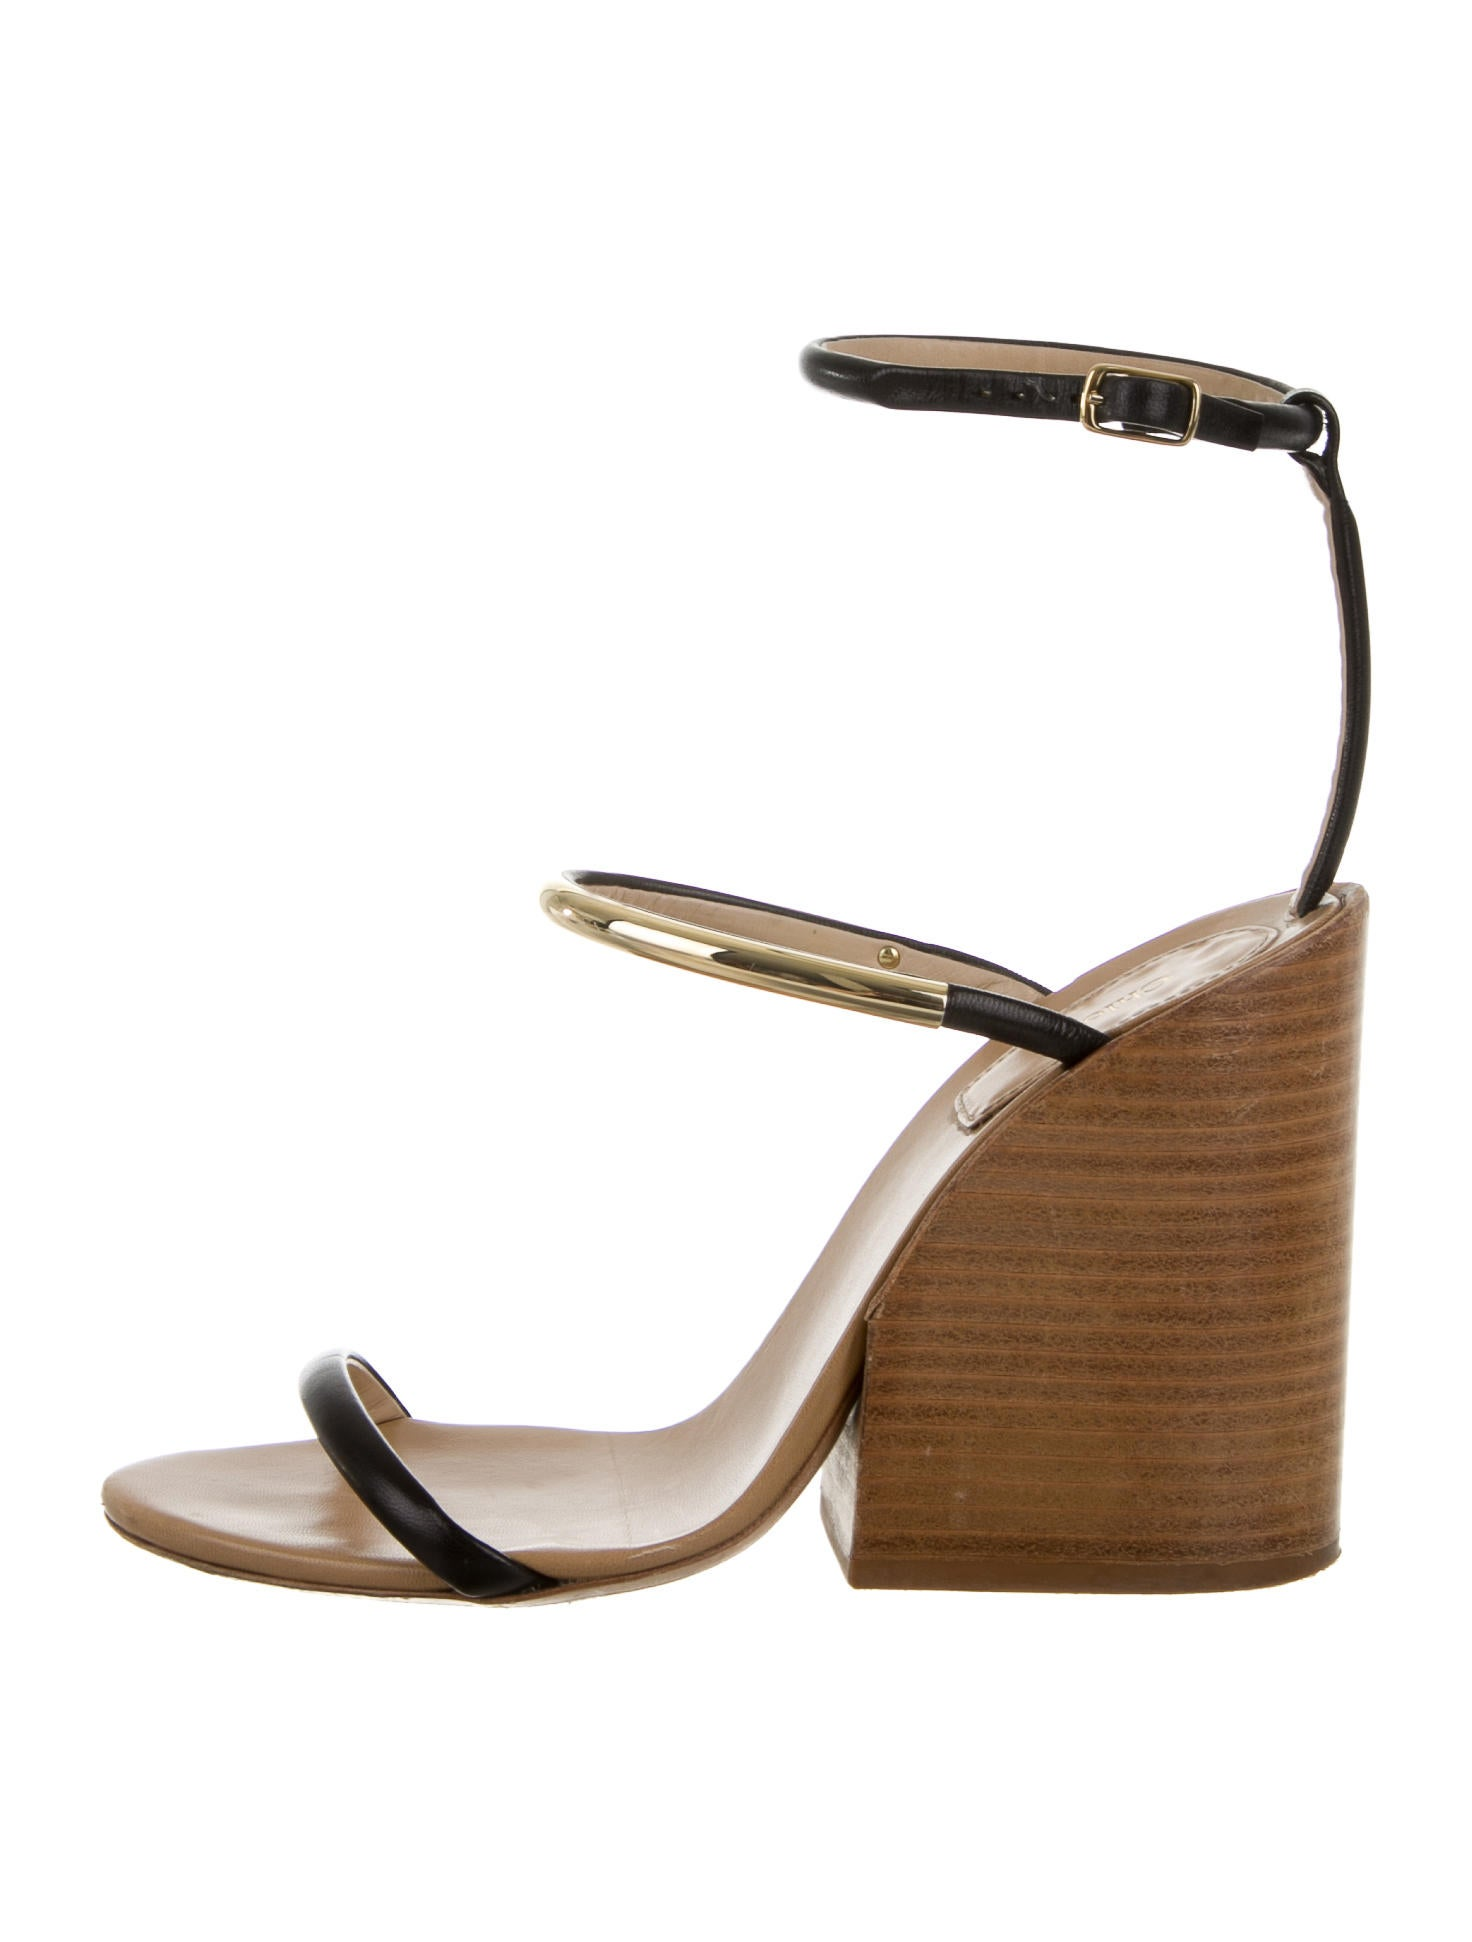 Shop Baretraps Janny Strappy Wedge Sandals online at hereaupy06.gq Woven crisscross straps and a subtle wedge heel pair with effortless closures on these Janny sandals from Baretraps for an enhanced fit and stylish versatility.3/5(8).